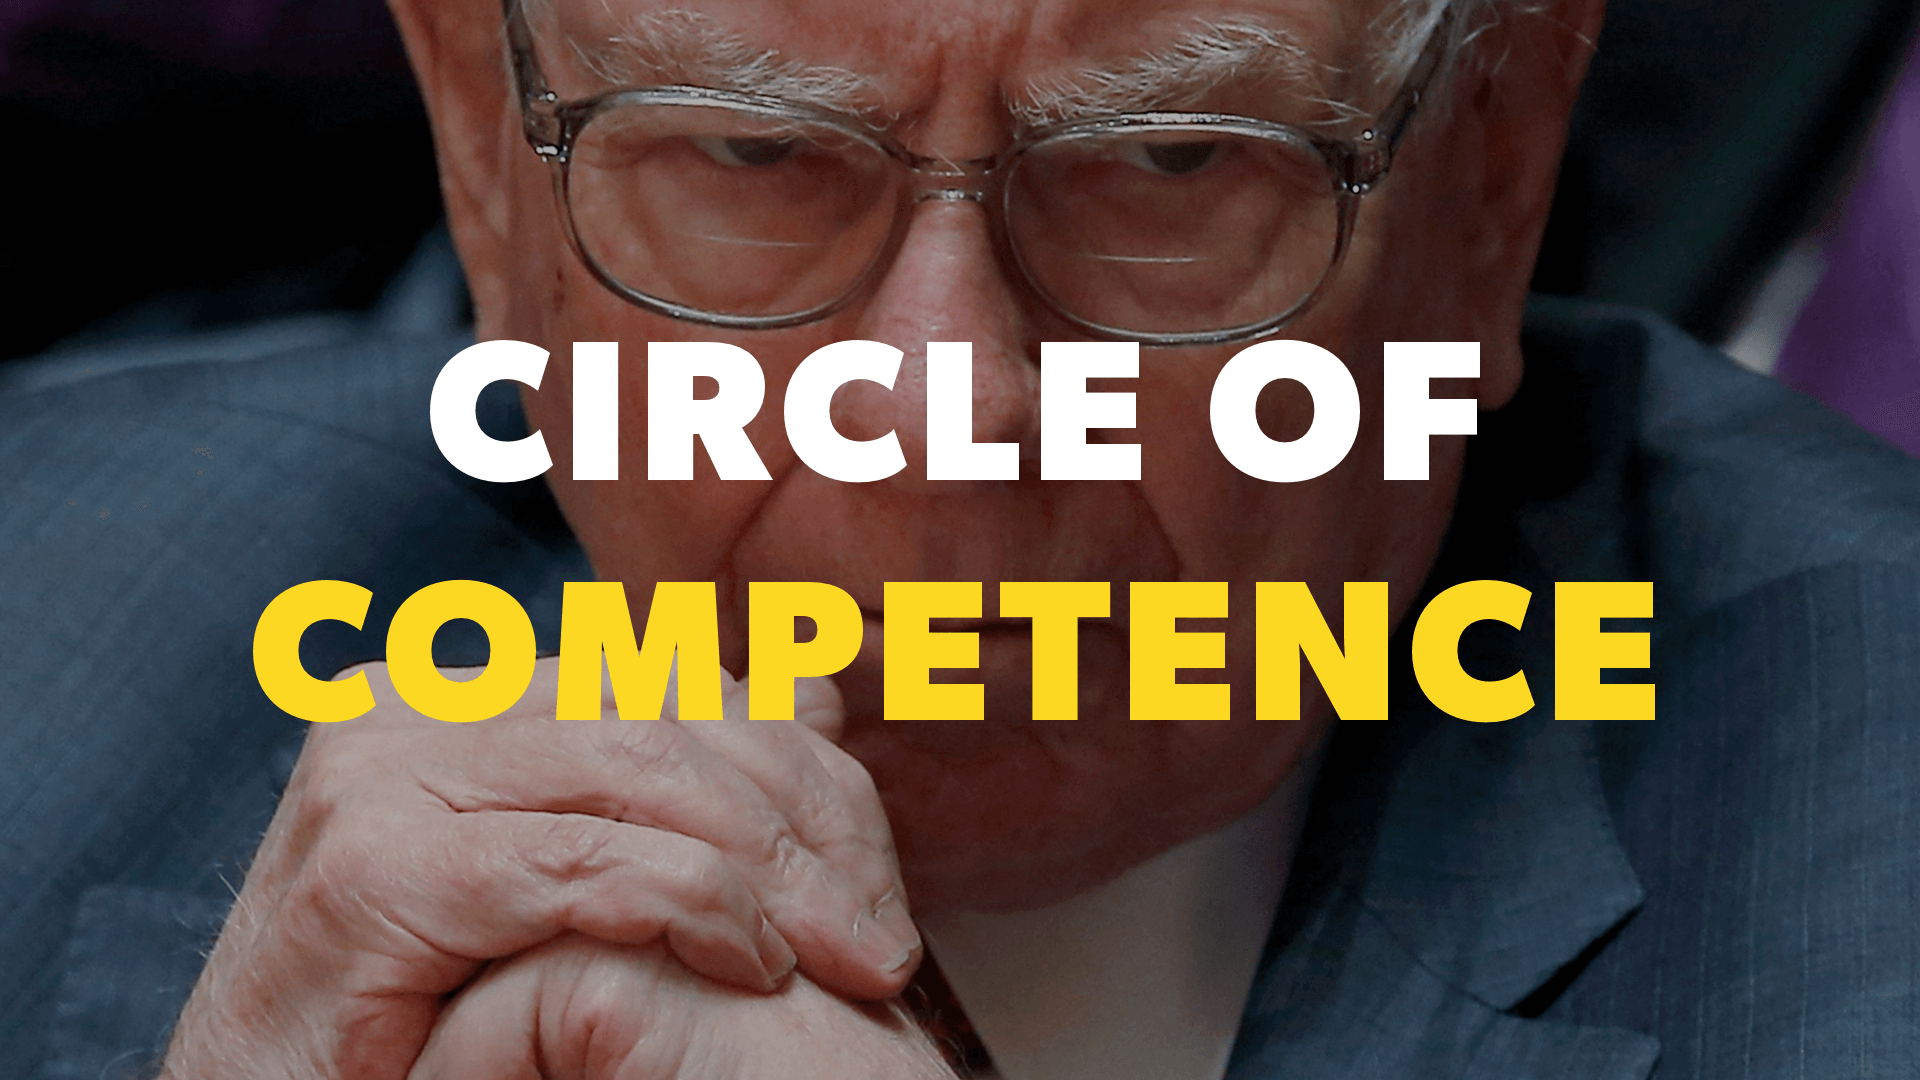 Circle of Competence: How Warren Buffett Avoids Failures